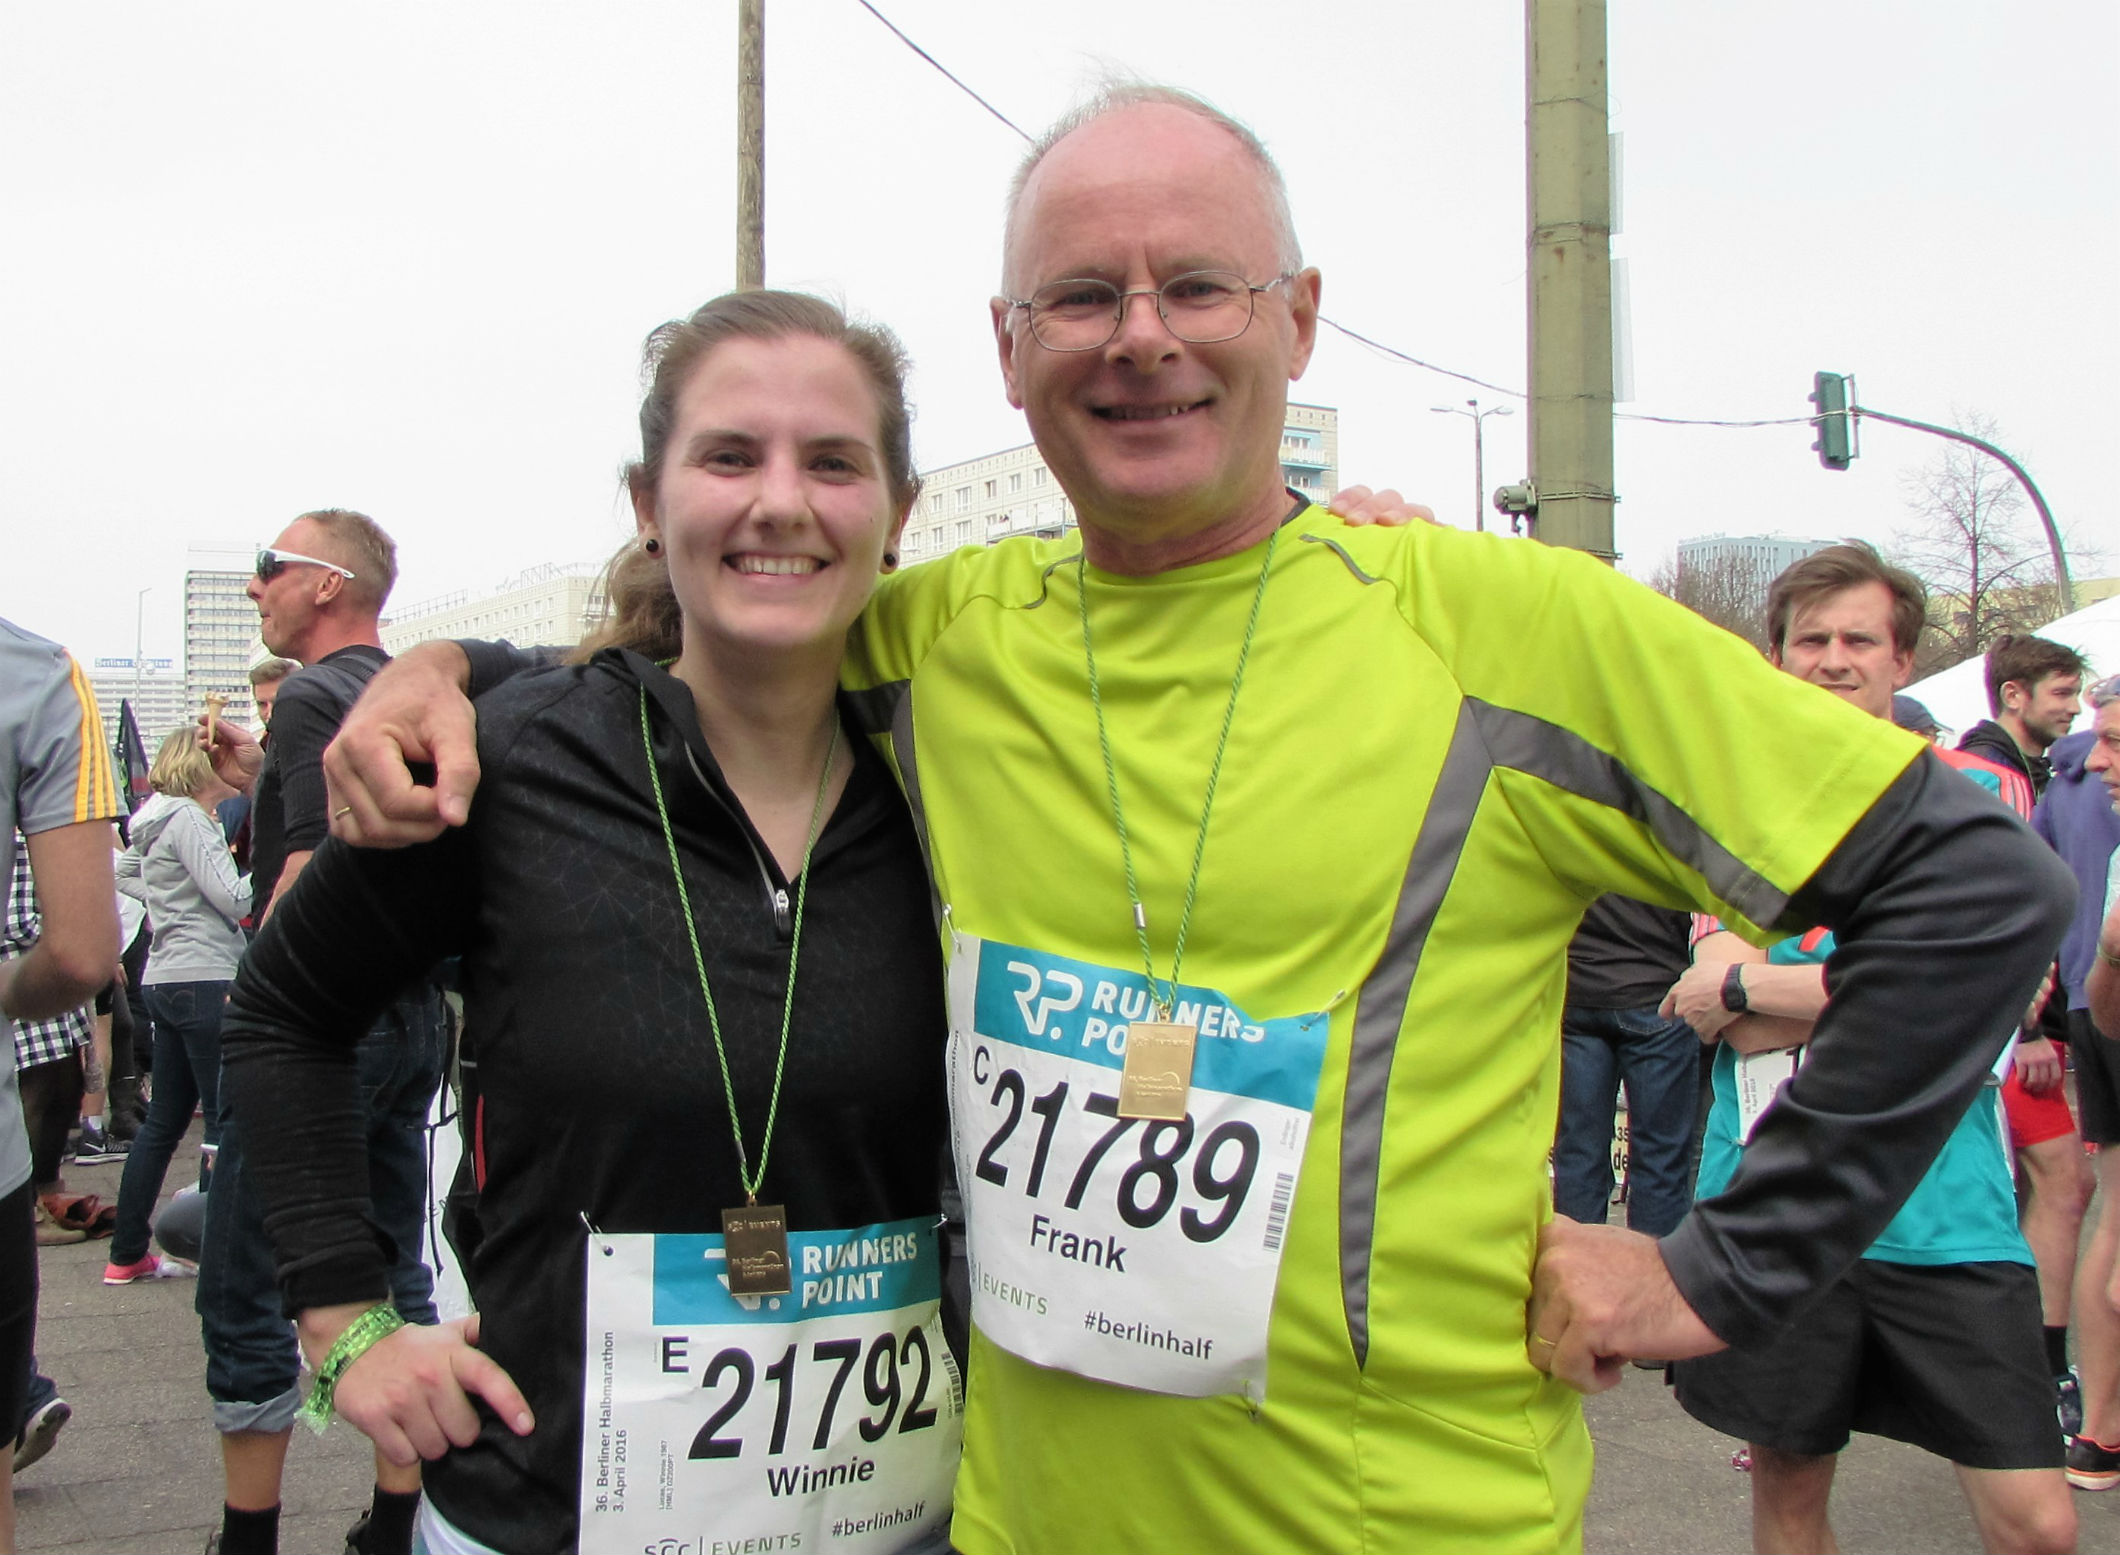 Winnie and Frank finished the Berlin half-marathon in April 2016